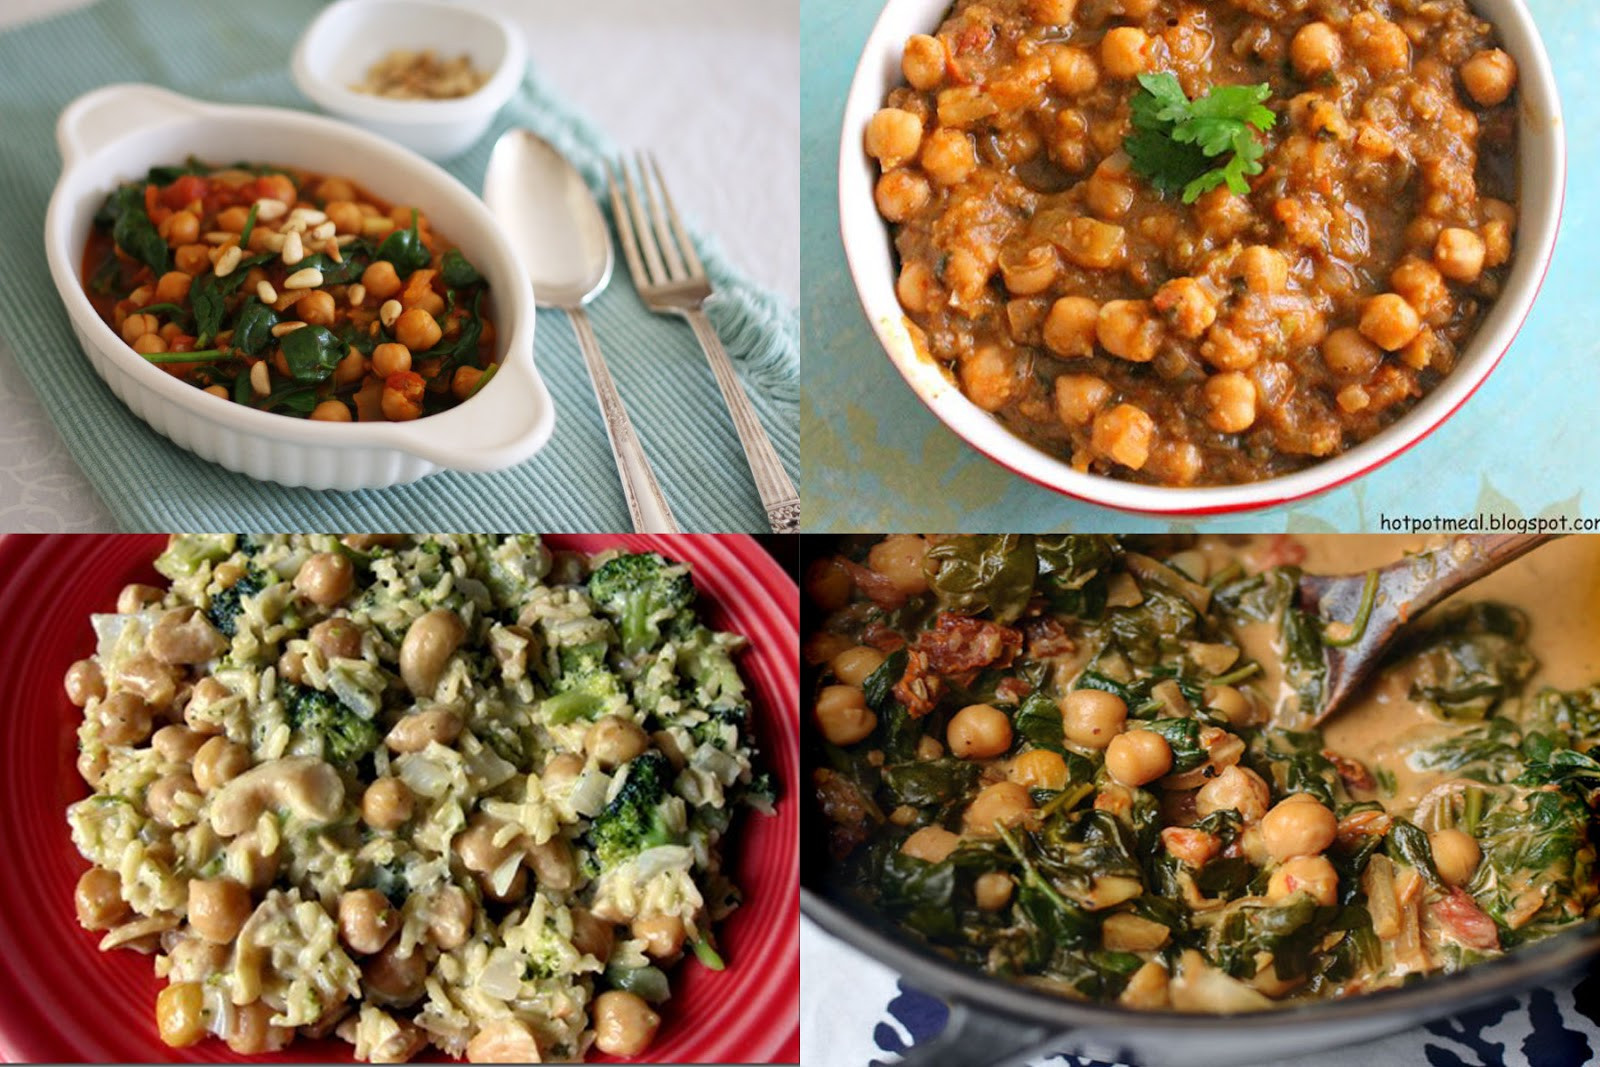 Healthy Chickpea Recipes  InSpiral Coaching Healthy Recipe Blog Carnival Chickpeas